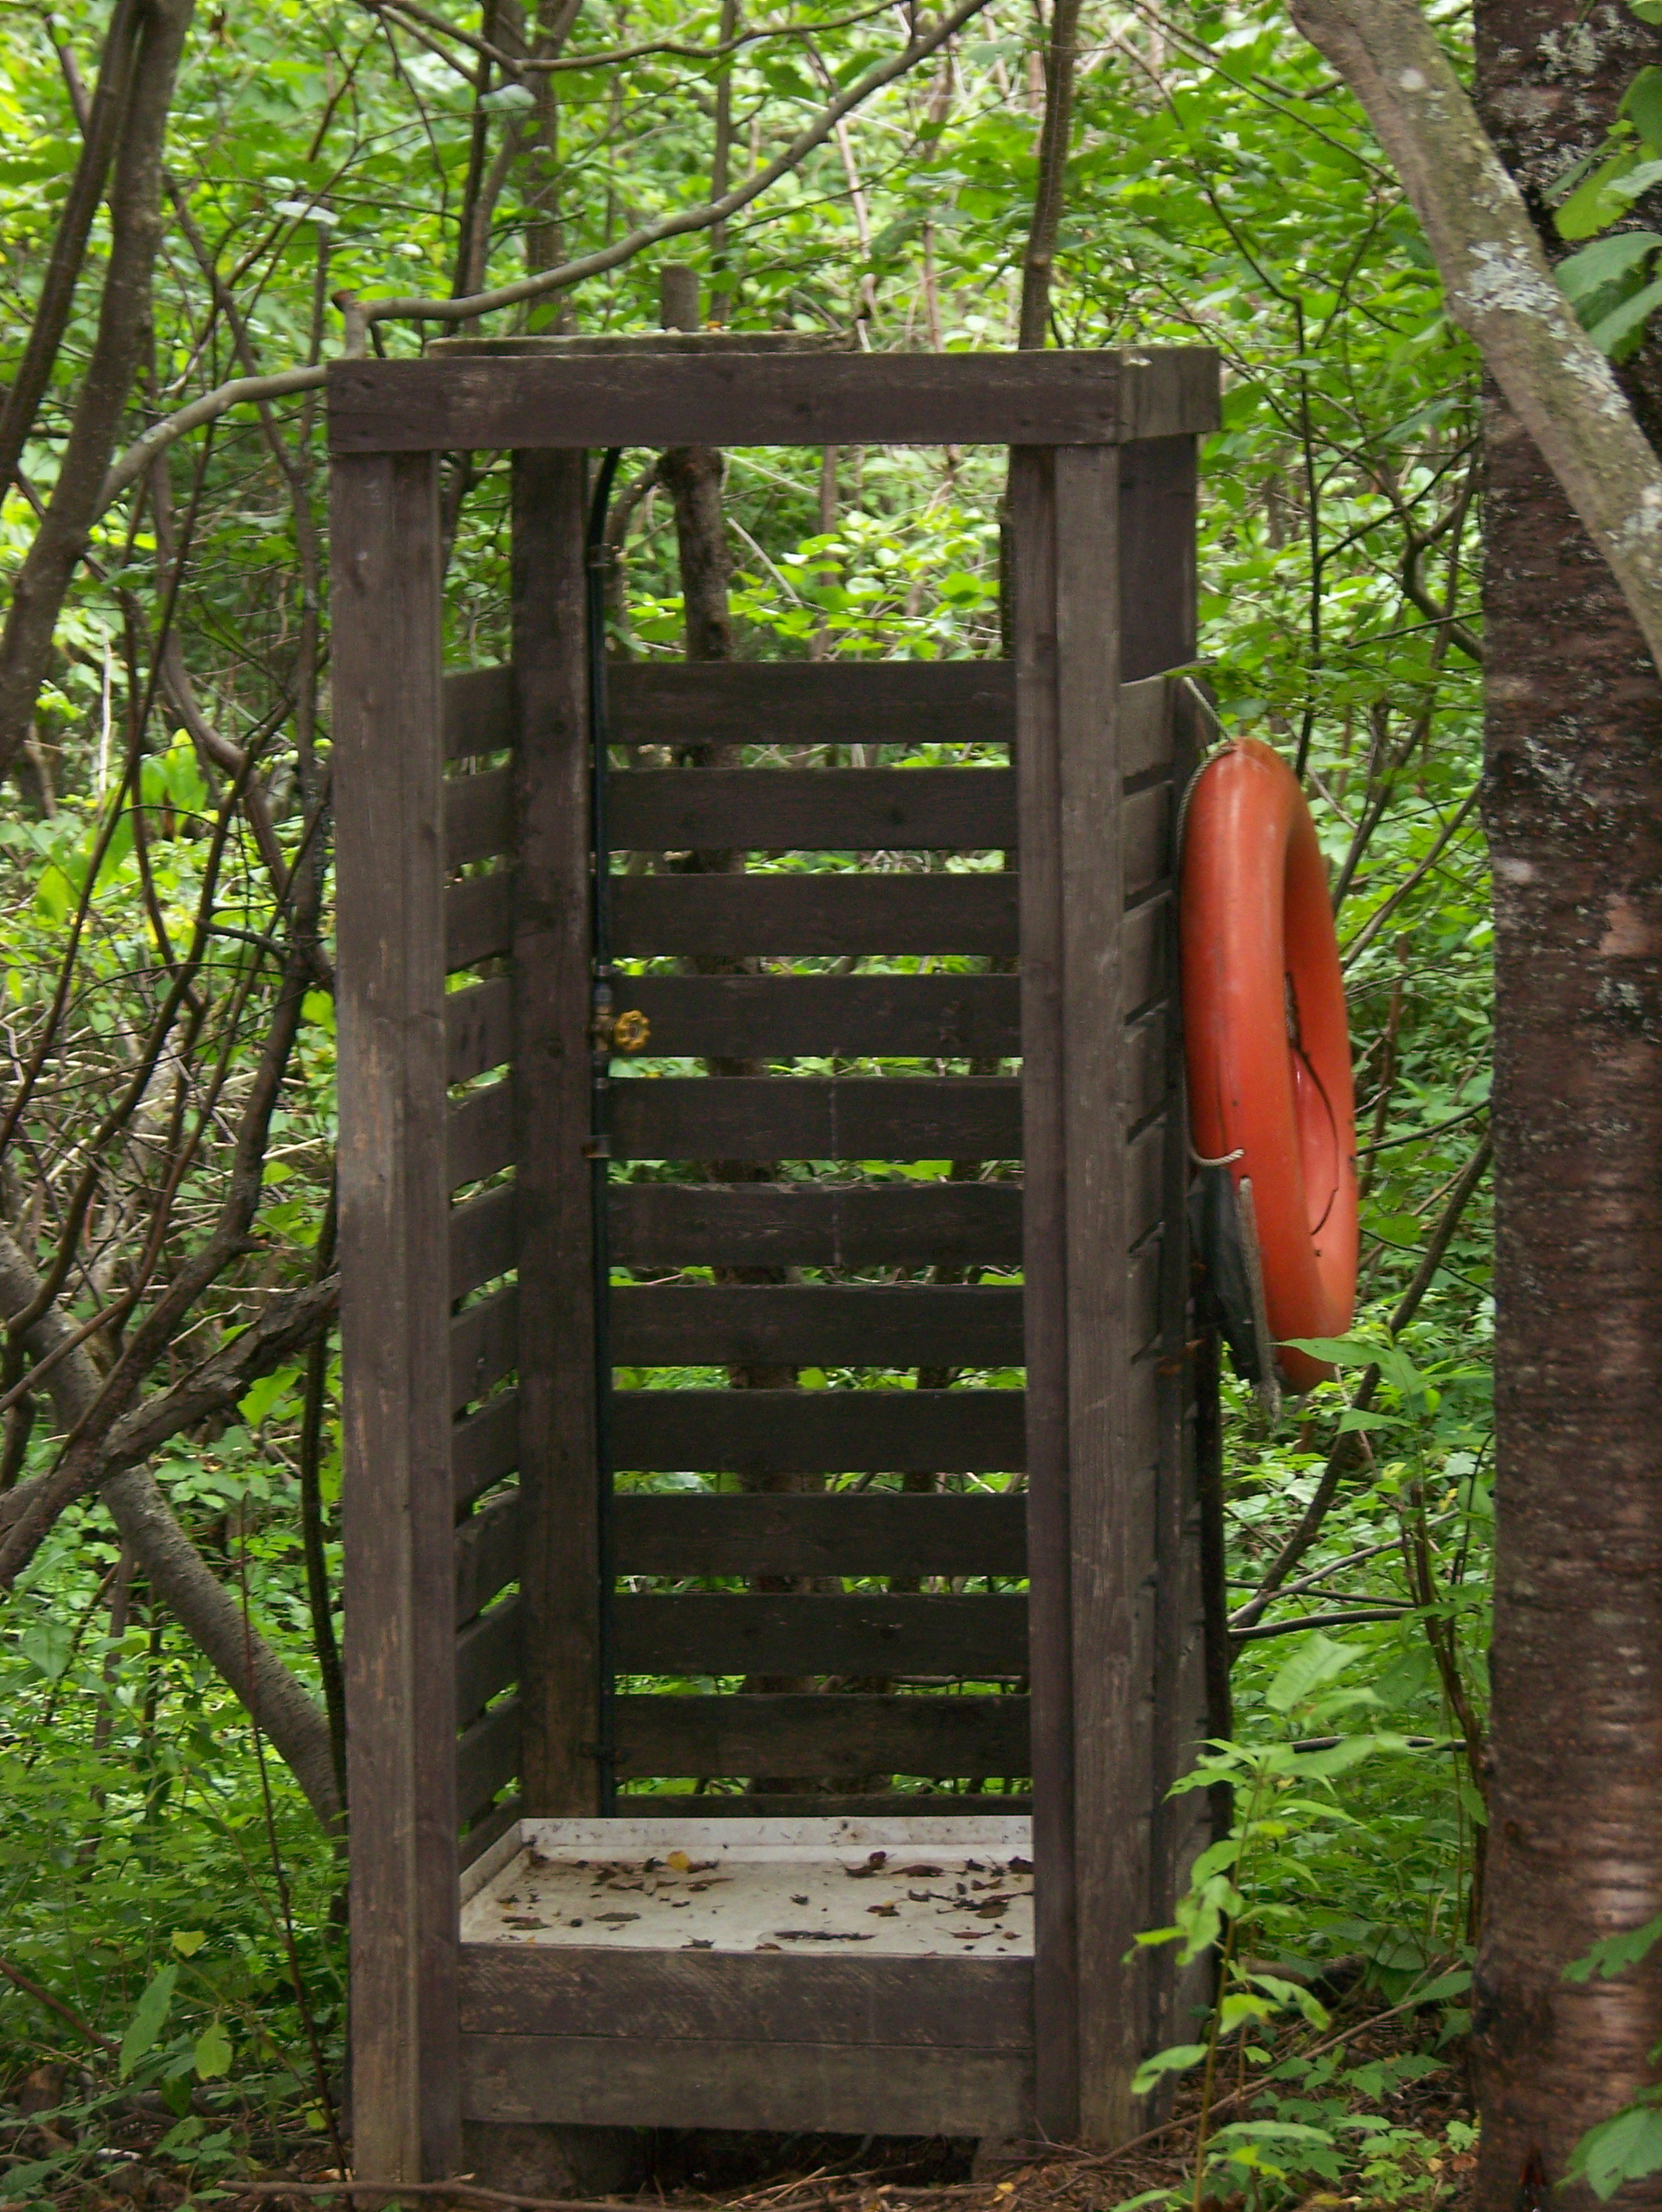 The shower at the trapper's cabin.